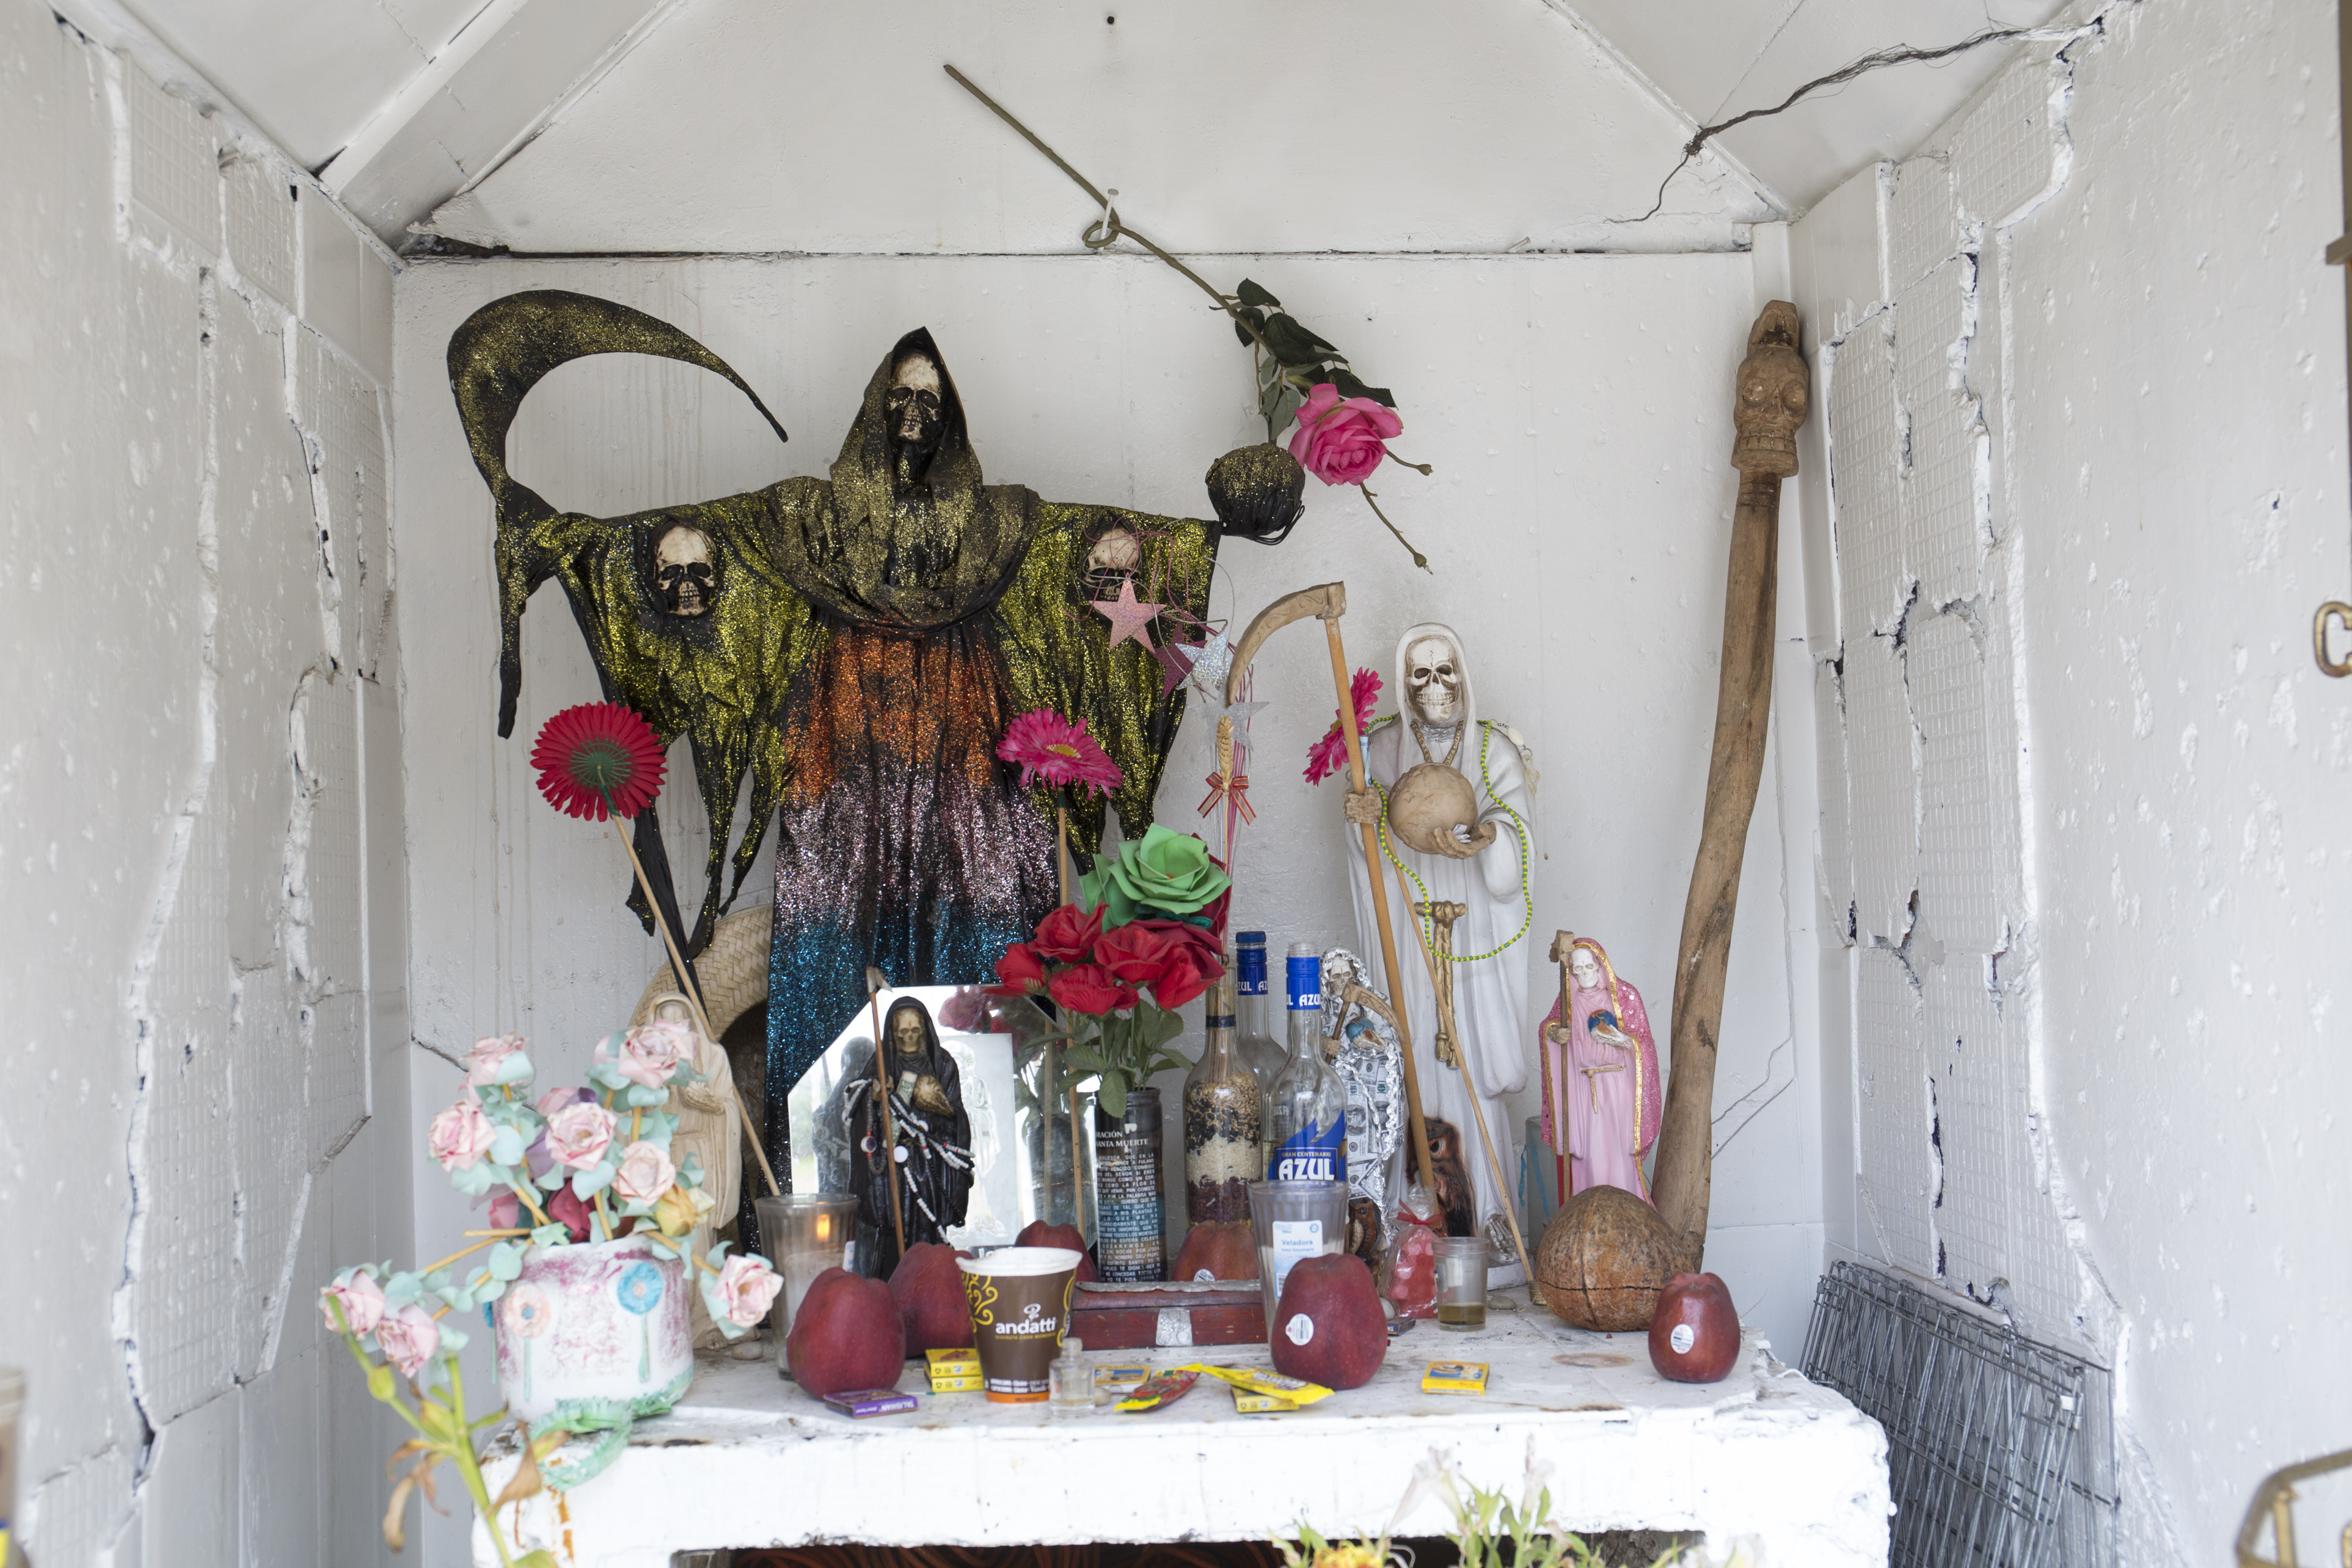 in 2001 across of and which City Muerte 10 in million altar The now North cult and both Santa Mexico followers gained its 8 claims first public between fq6WAO5w